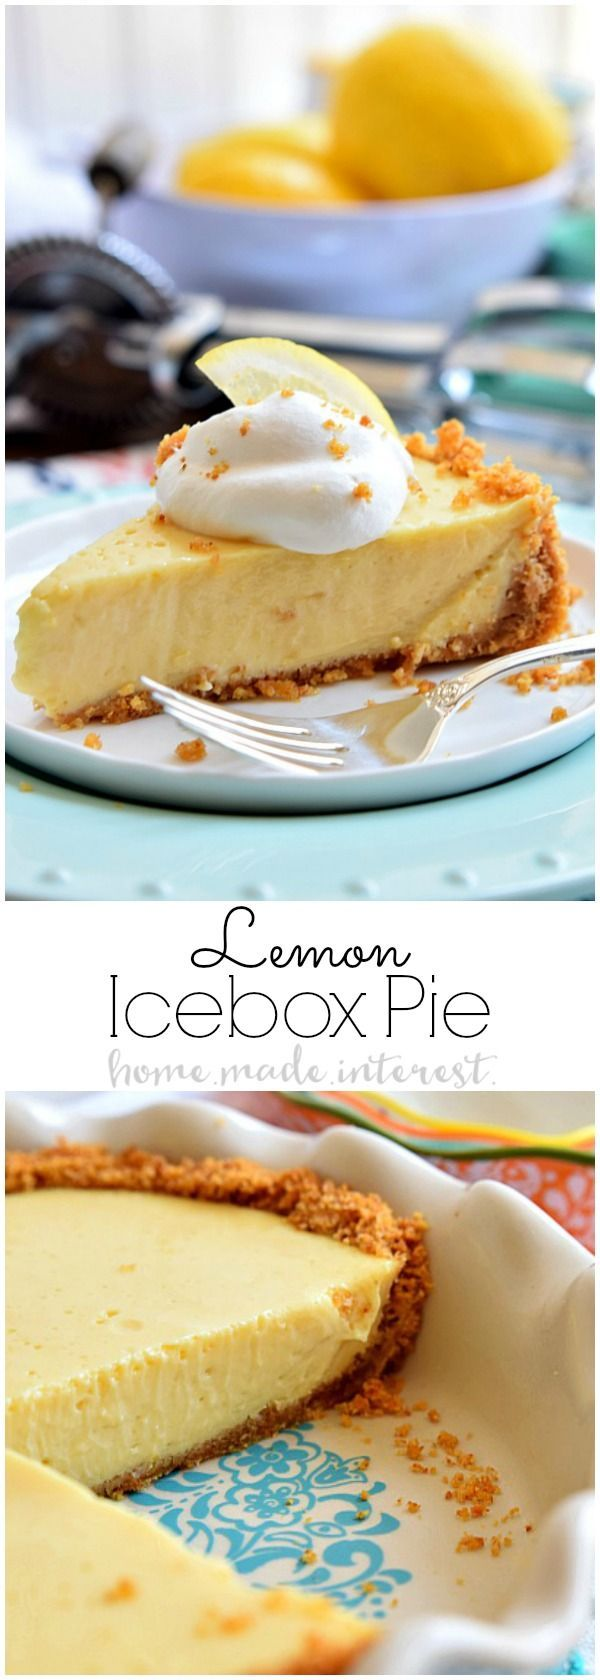 This sweet and creamy Lemon Icebox Pie is a lot like a Key Lime Pie recipe with lemons instead of Key Limes. It is one of my favorite summer dessert recipes with lemons! A creamy lemon filling baked into a graham cracker crust and topped with some fresh w